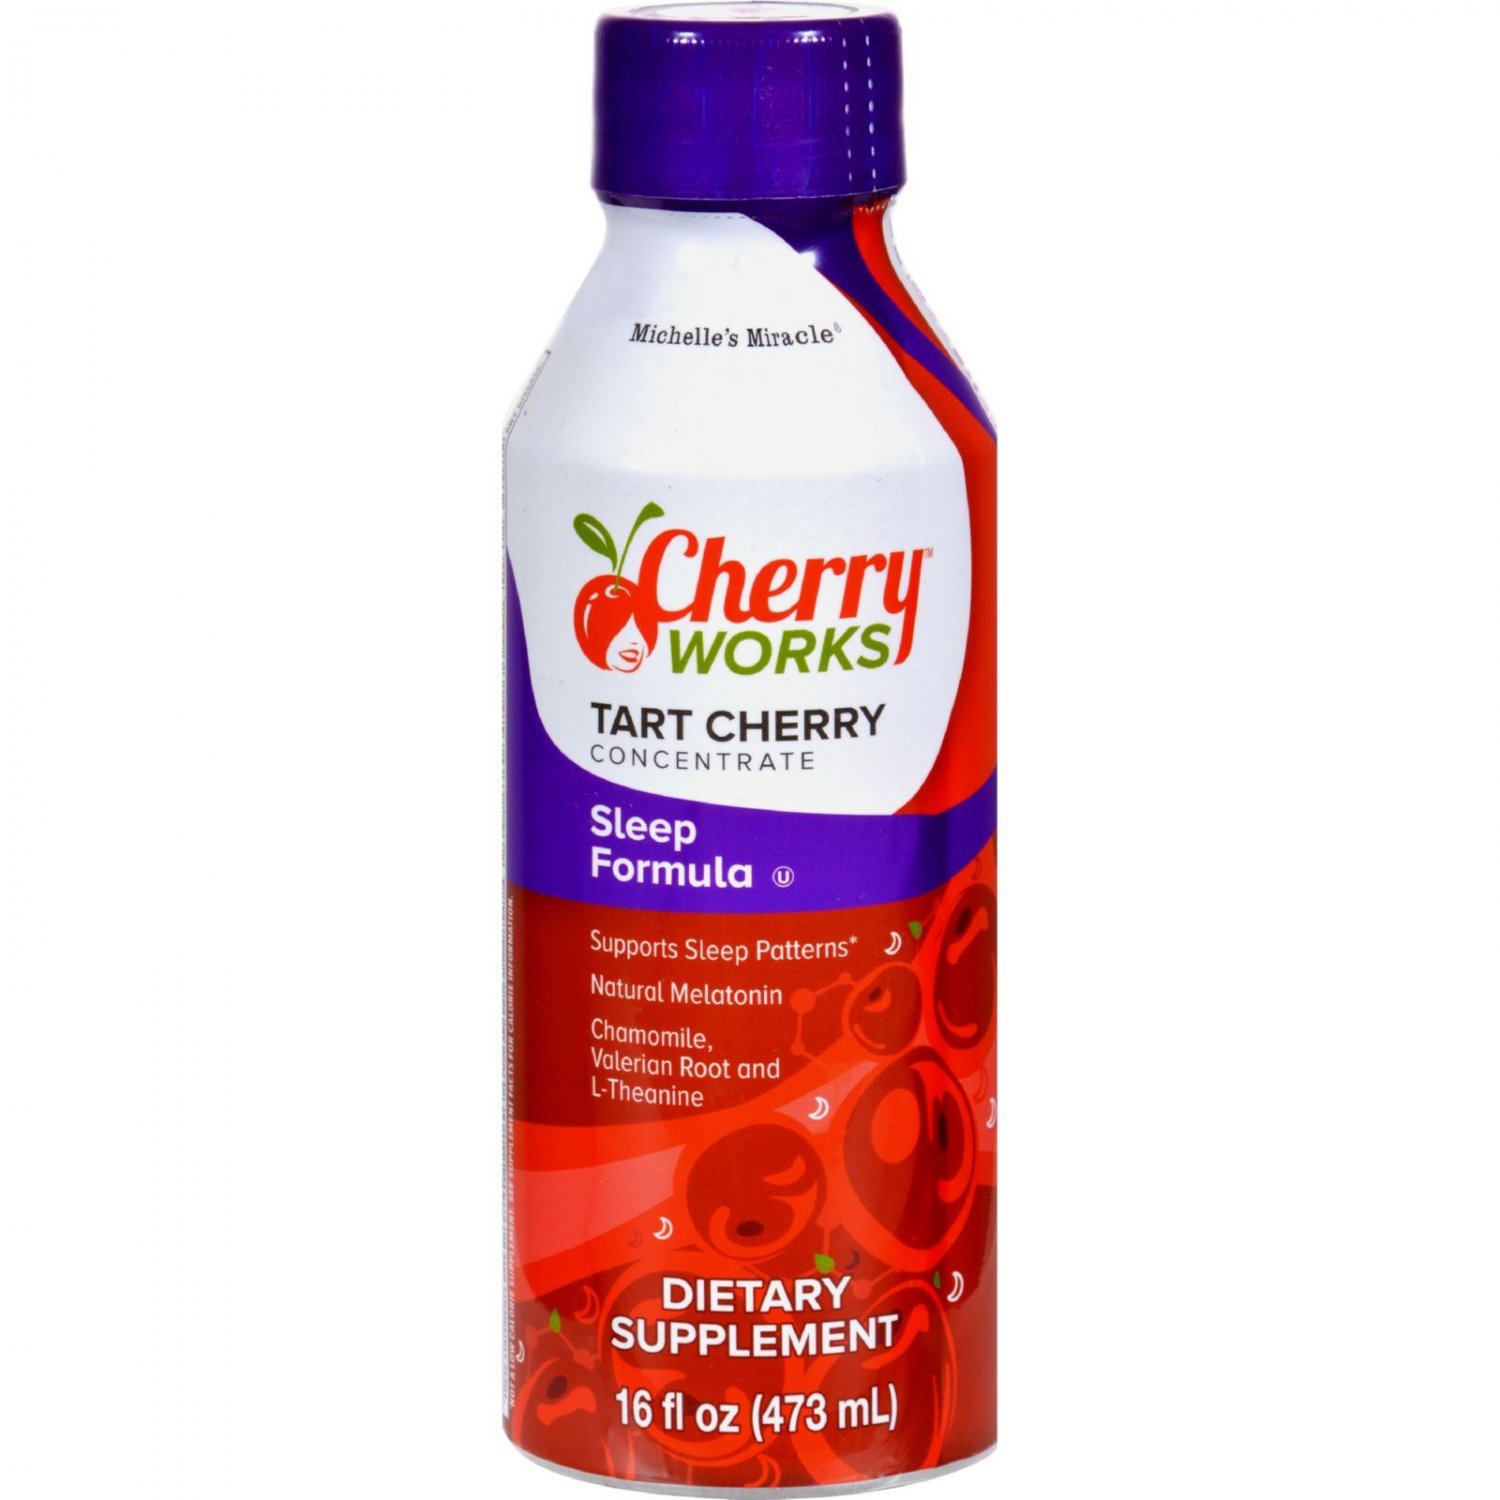 Michelle's Miracle Sleep Formula Tart Cherry Concentrate - 16 fl oz